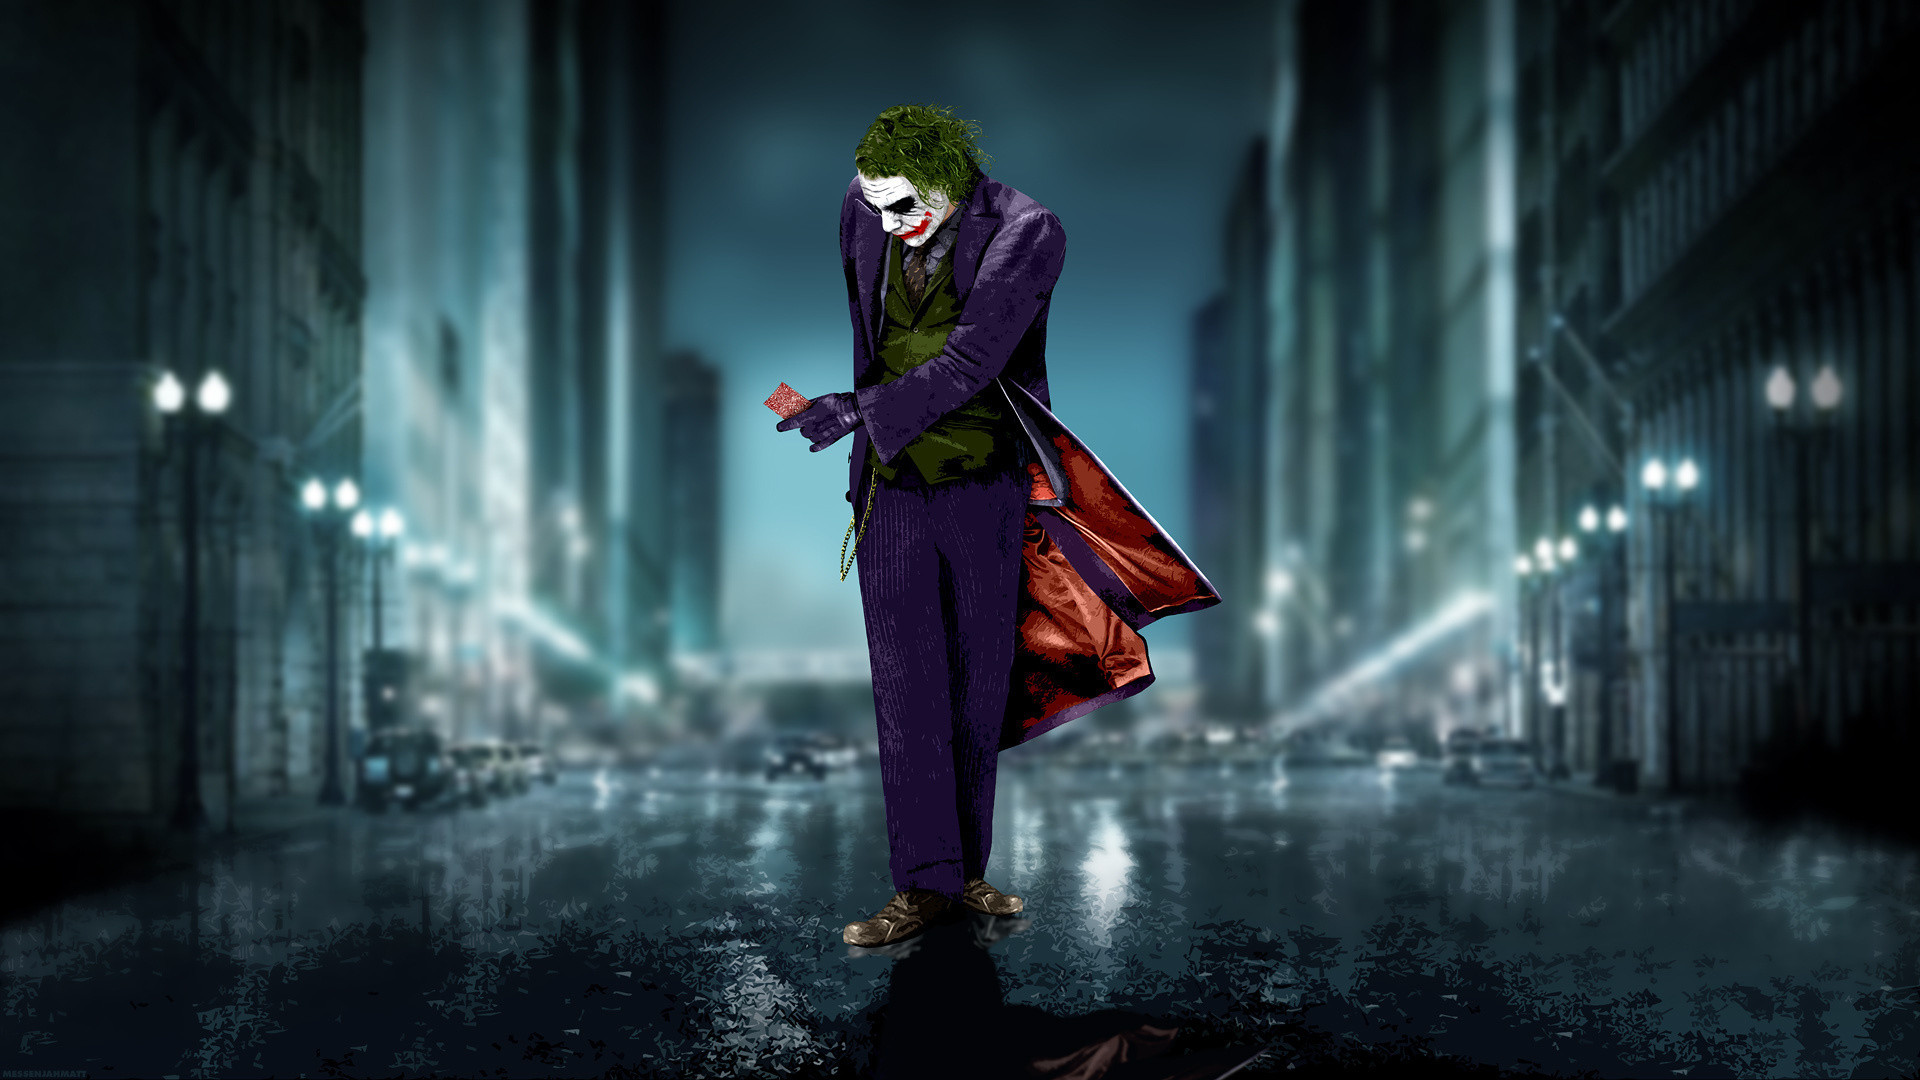 hd movie wallpapers 1080p (77+ background pictures)